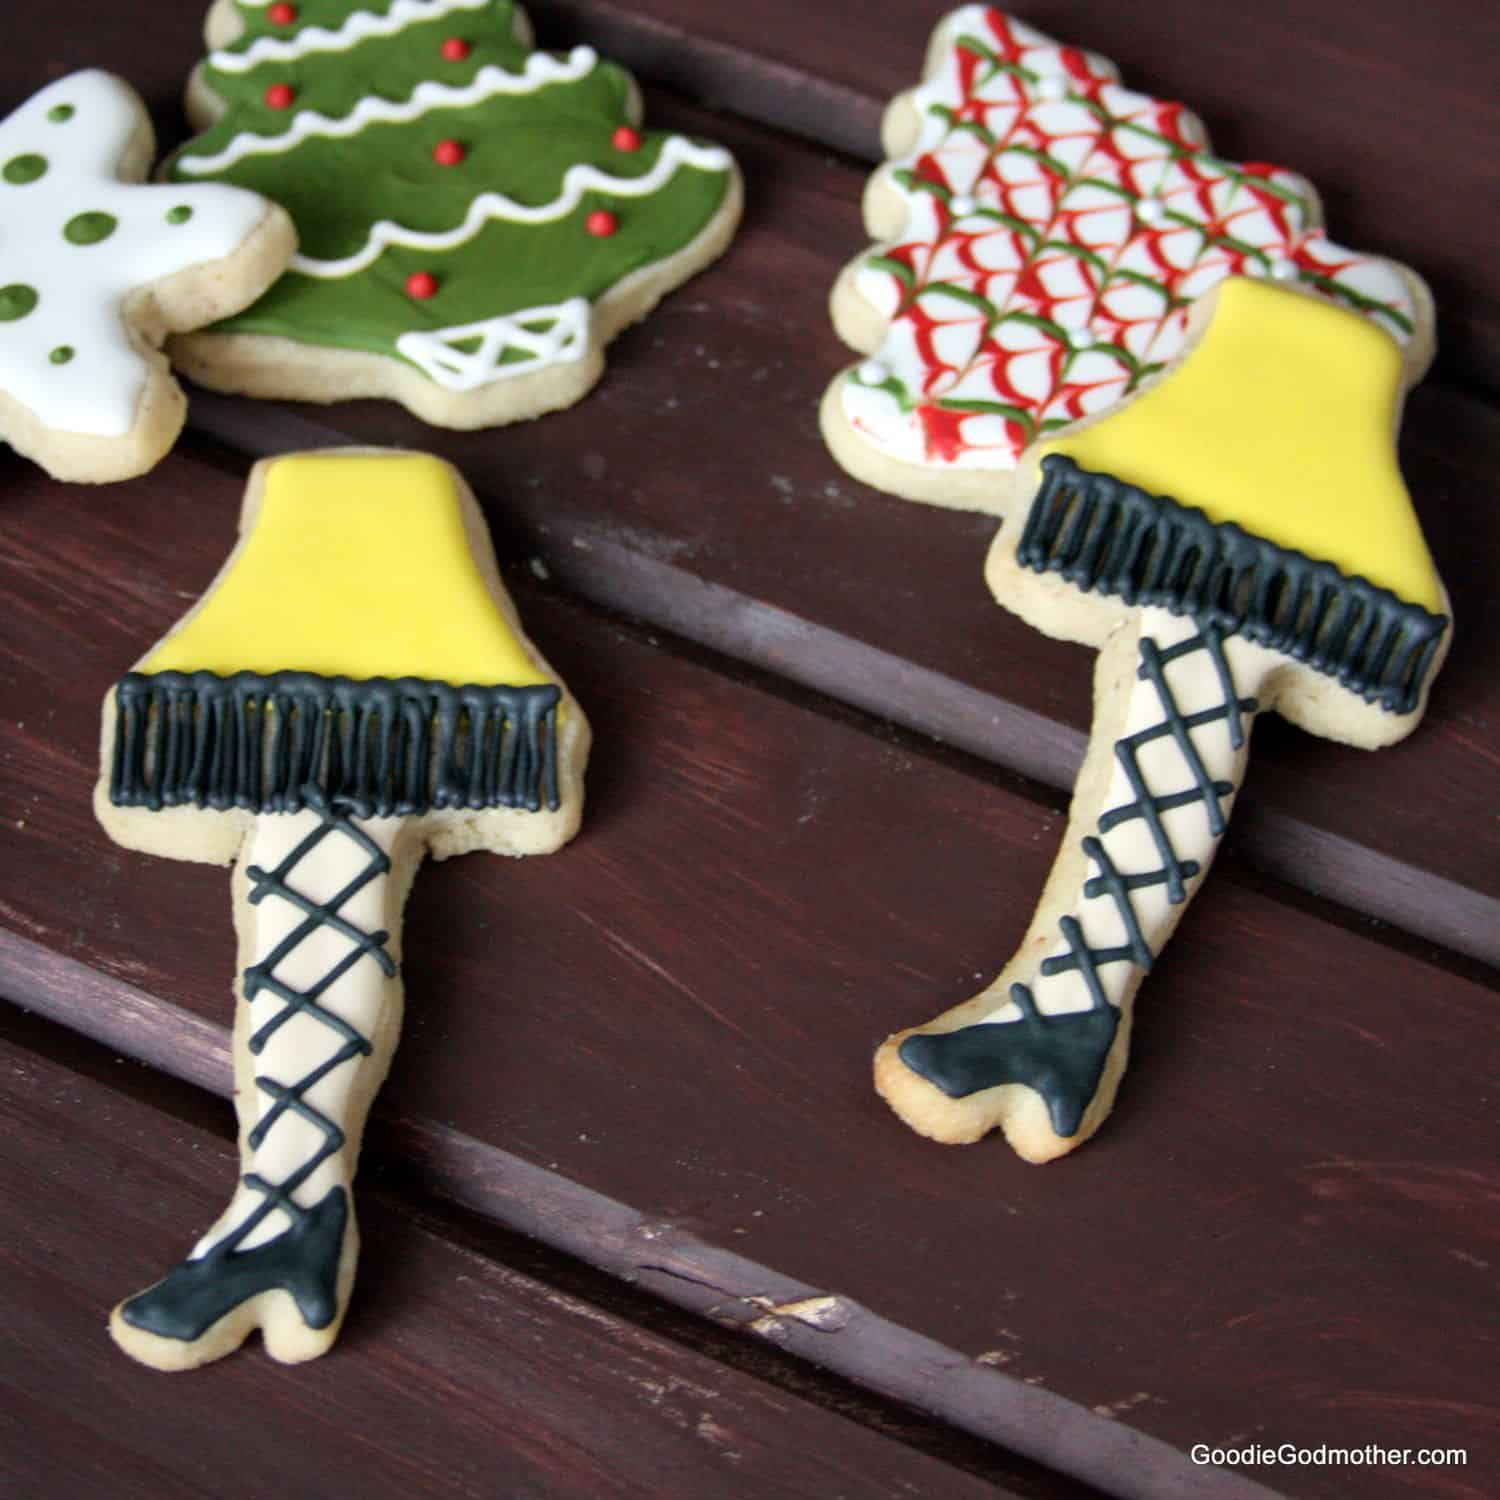 leg lamp cookie decorating tutorial by goodie godmother - Sugar Cookie Decorating